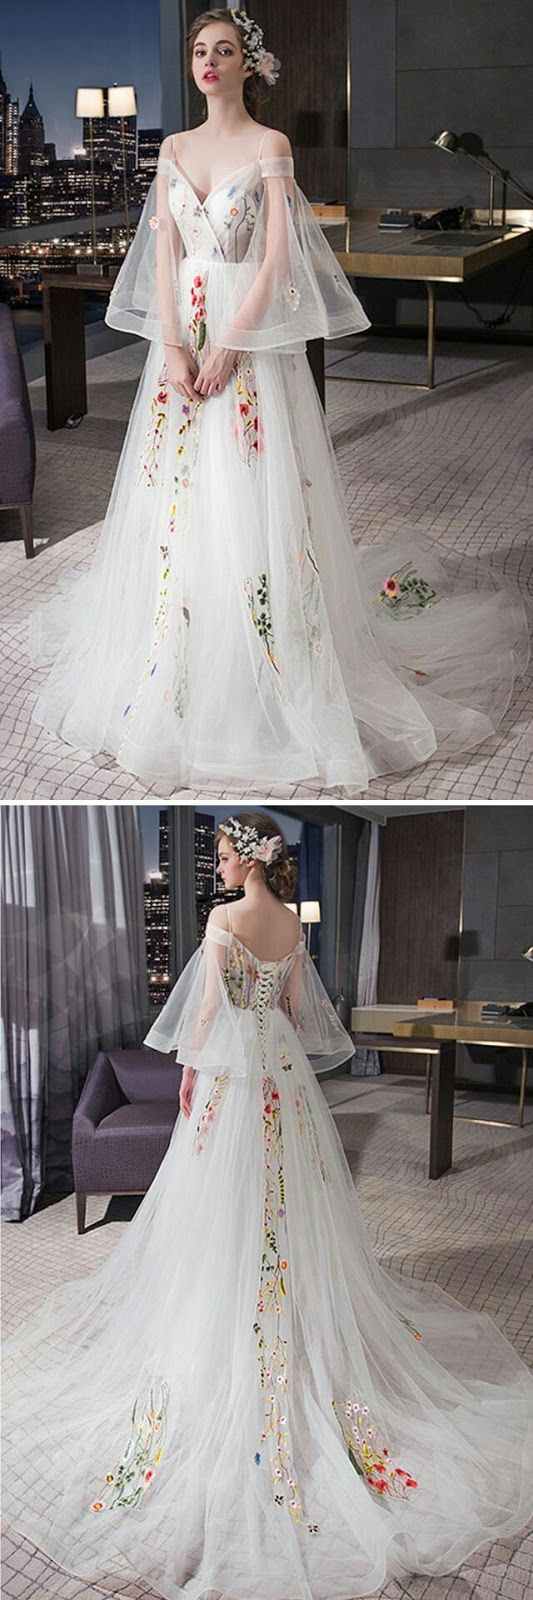 Delicate and feminine tulle wedding dress u Follow Maude and